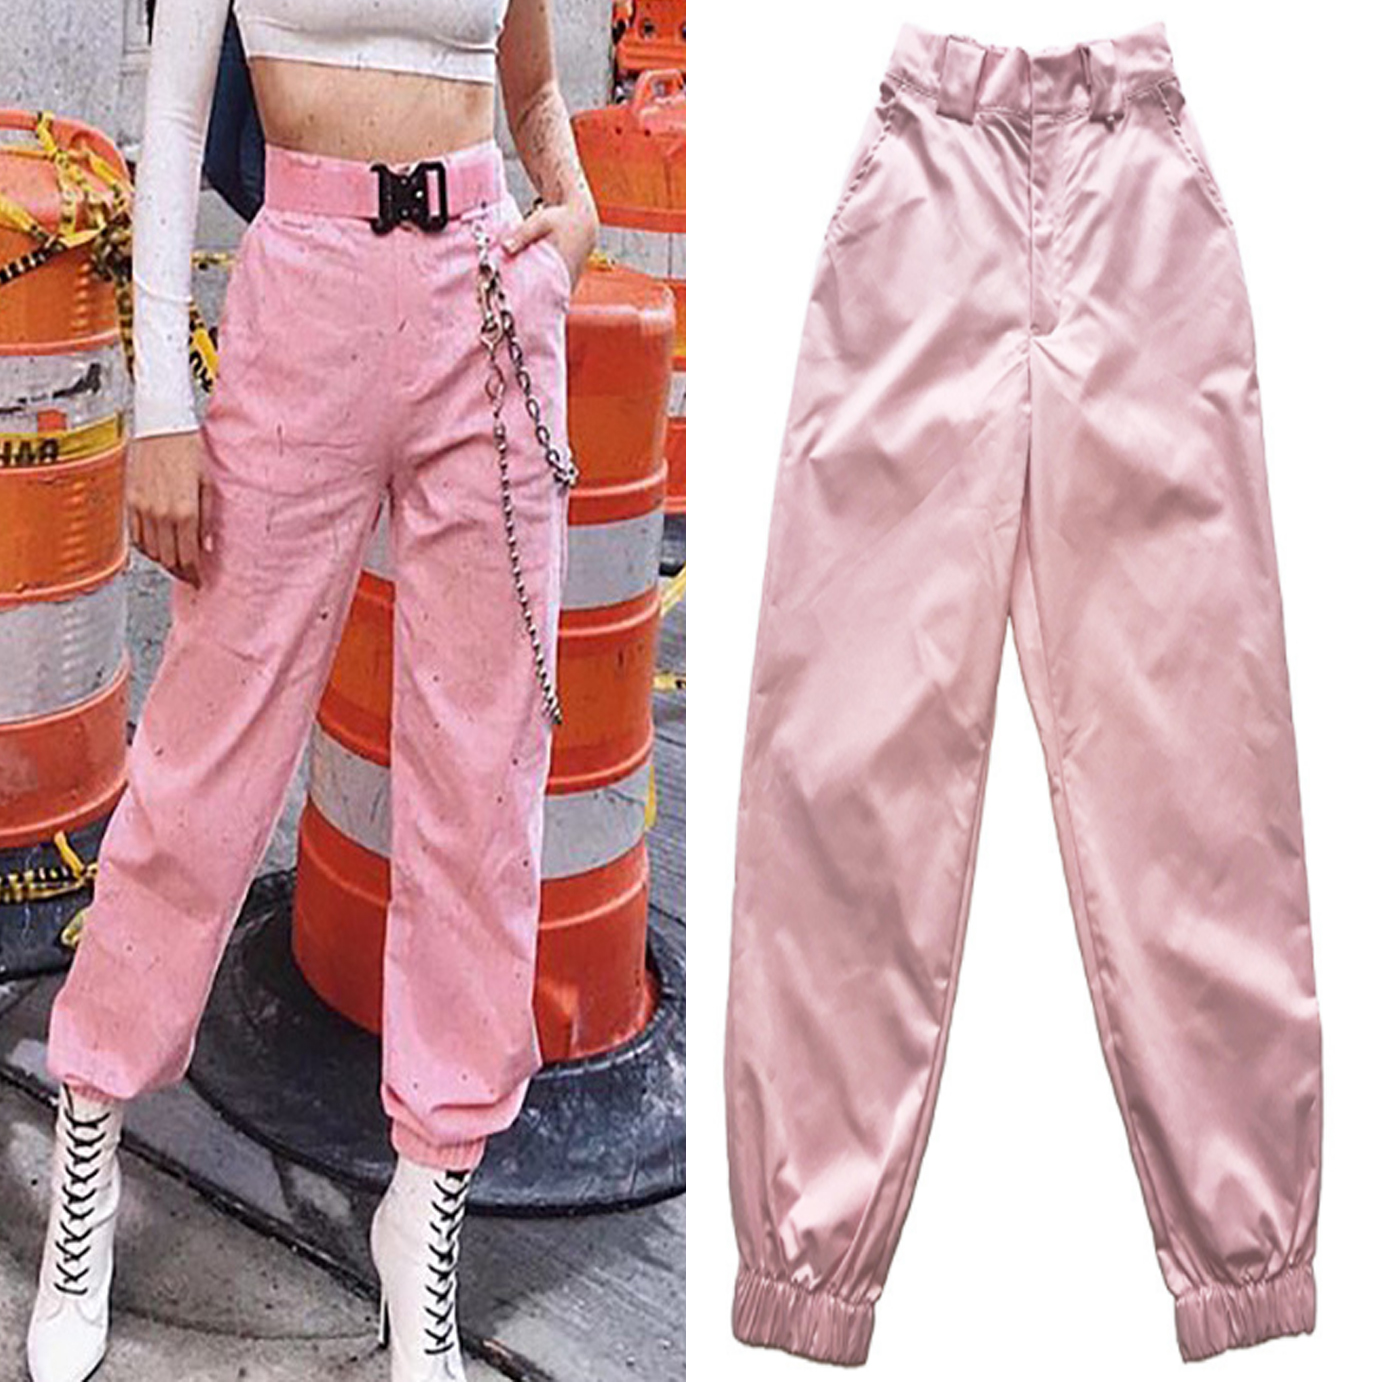 Streetwear Vintage Pink High Waist Metal Chain Cargo Straight Jogger Women Pant Harem Hiphop Harajuku Korean Casual Sweatpant